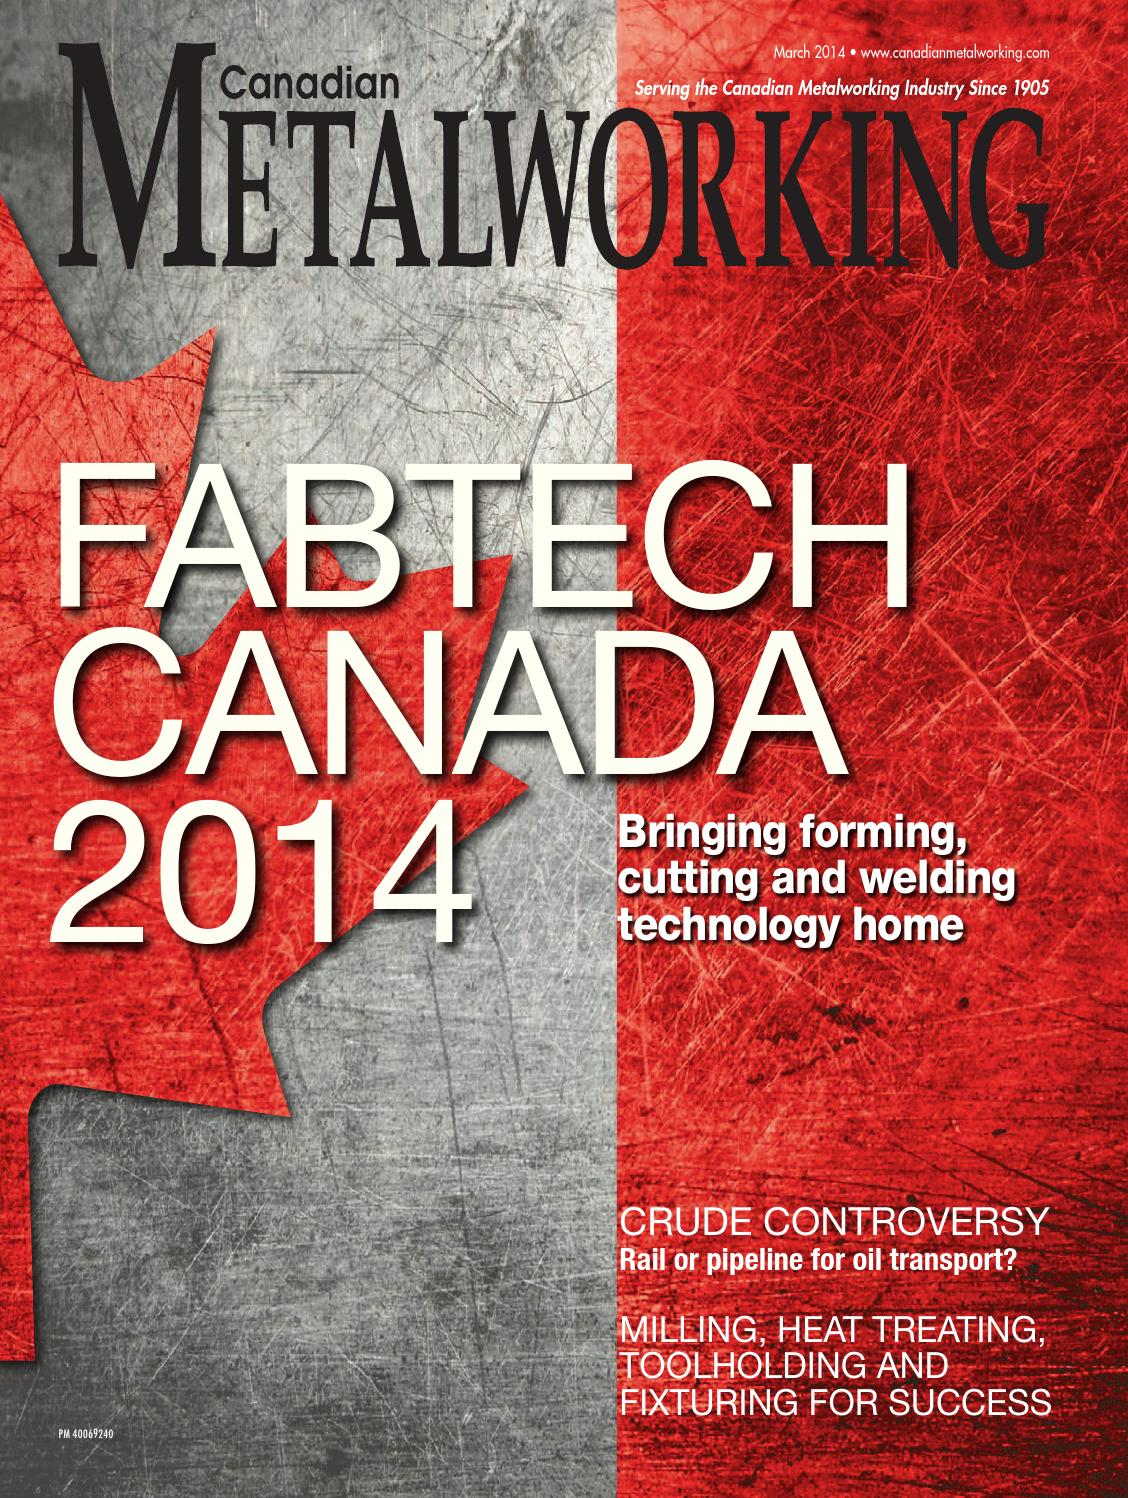 Canadian Metalworking March 2014 by Annex Newcom